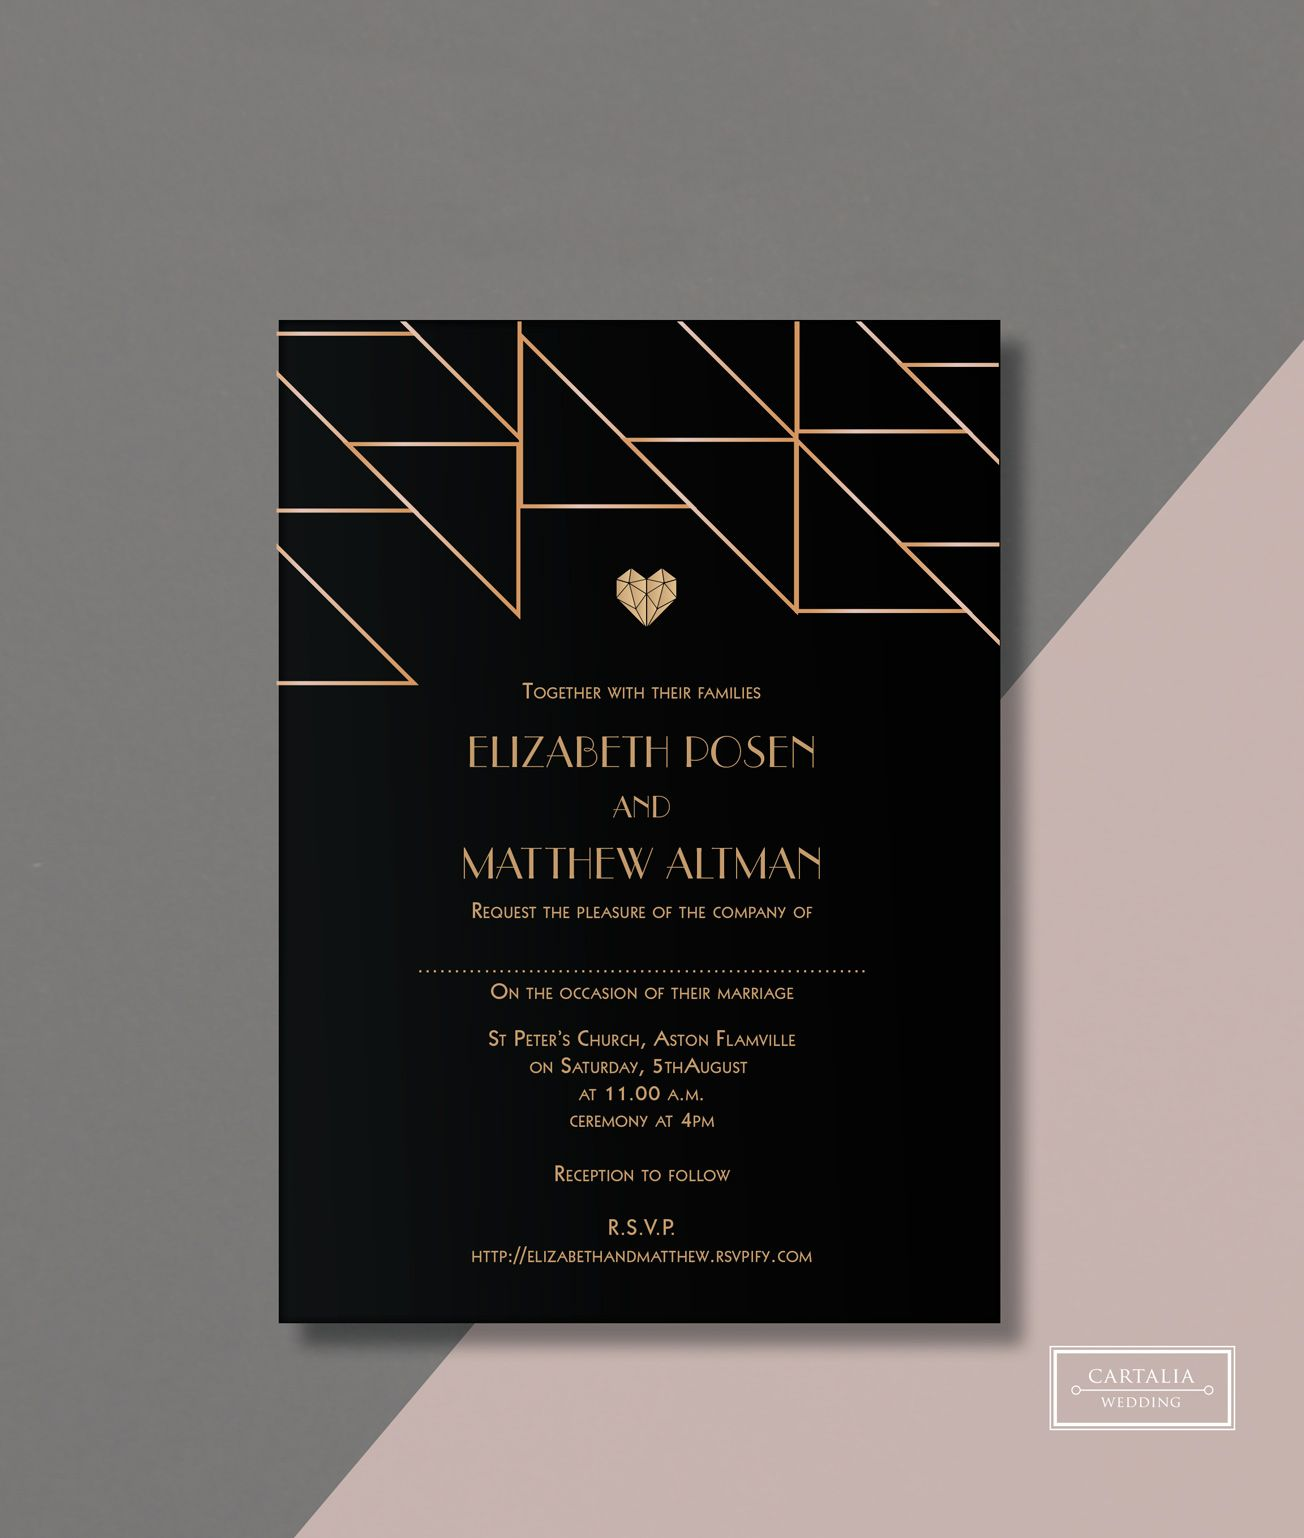 Geometric Heart Wedding Invitation Design With Gold Foil From Cartalia Perfect For Your Modern